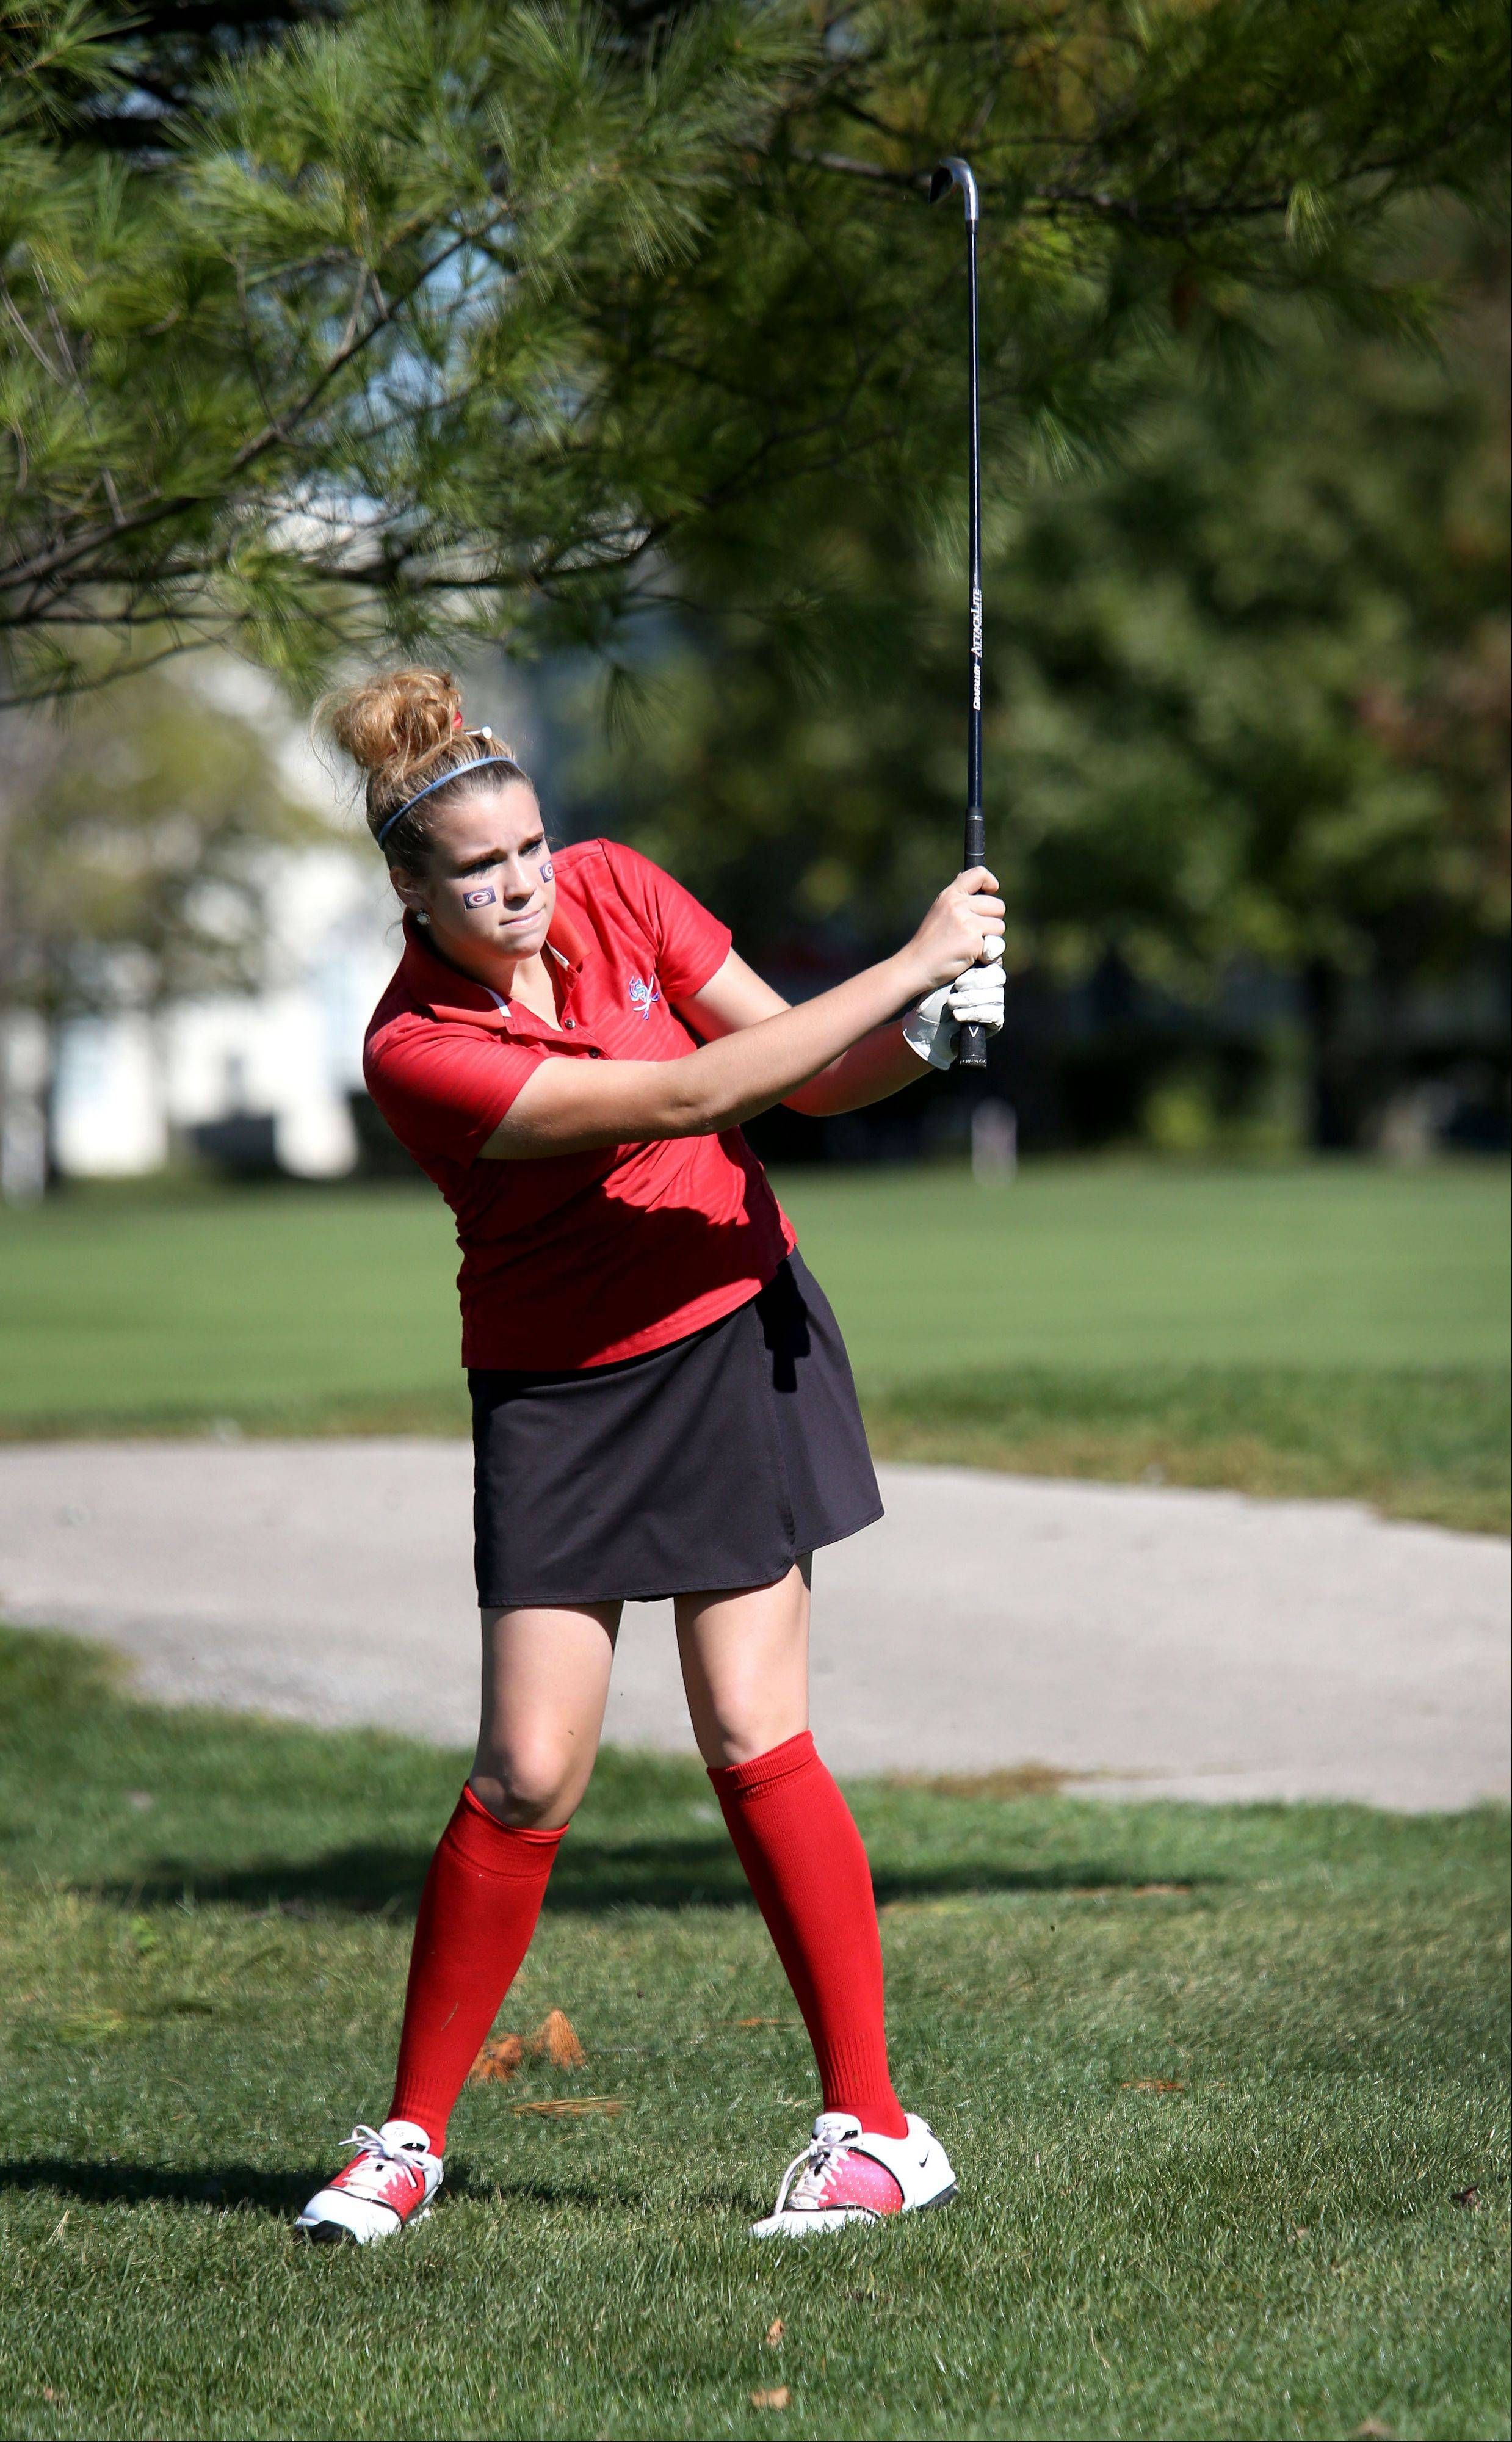 Abby Johnson of Glenbard South watches her shot on the 11th green during Class AA Glenbard East regional girls golf at Glendale Lakes Golf Course in Glendale Heights on Wednesday.